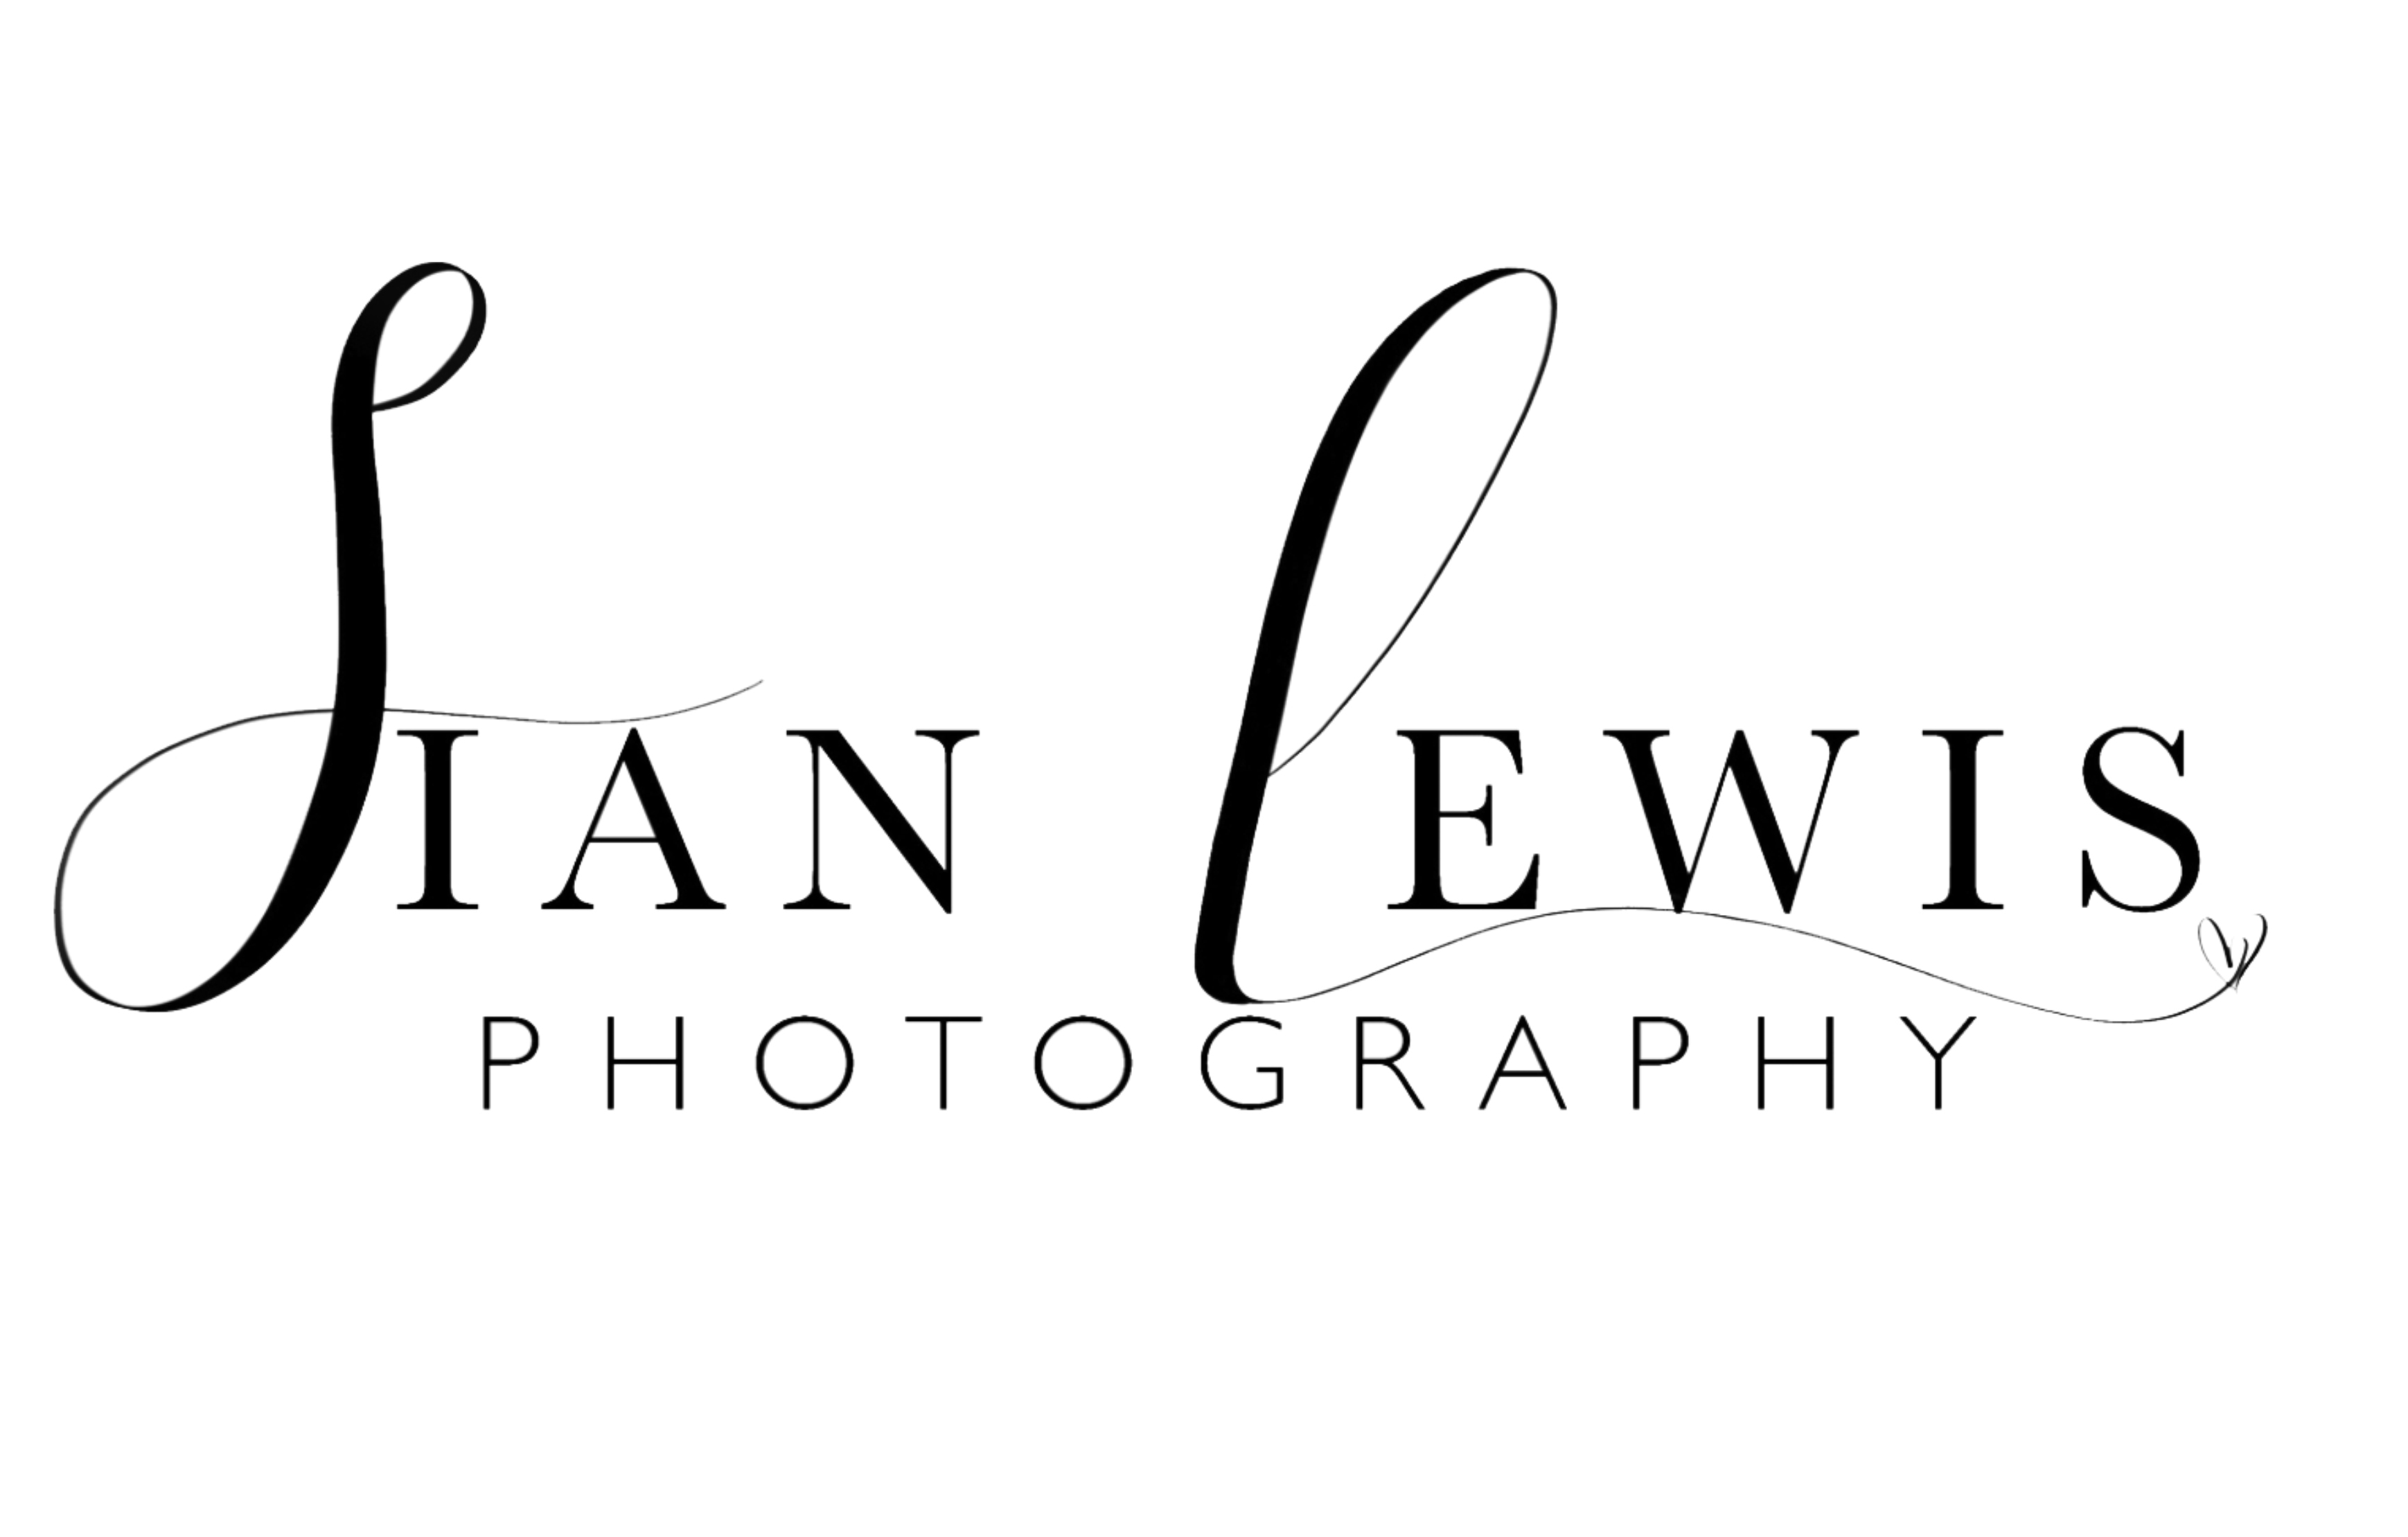 Sian Lewis Photography